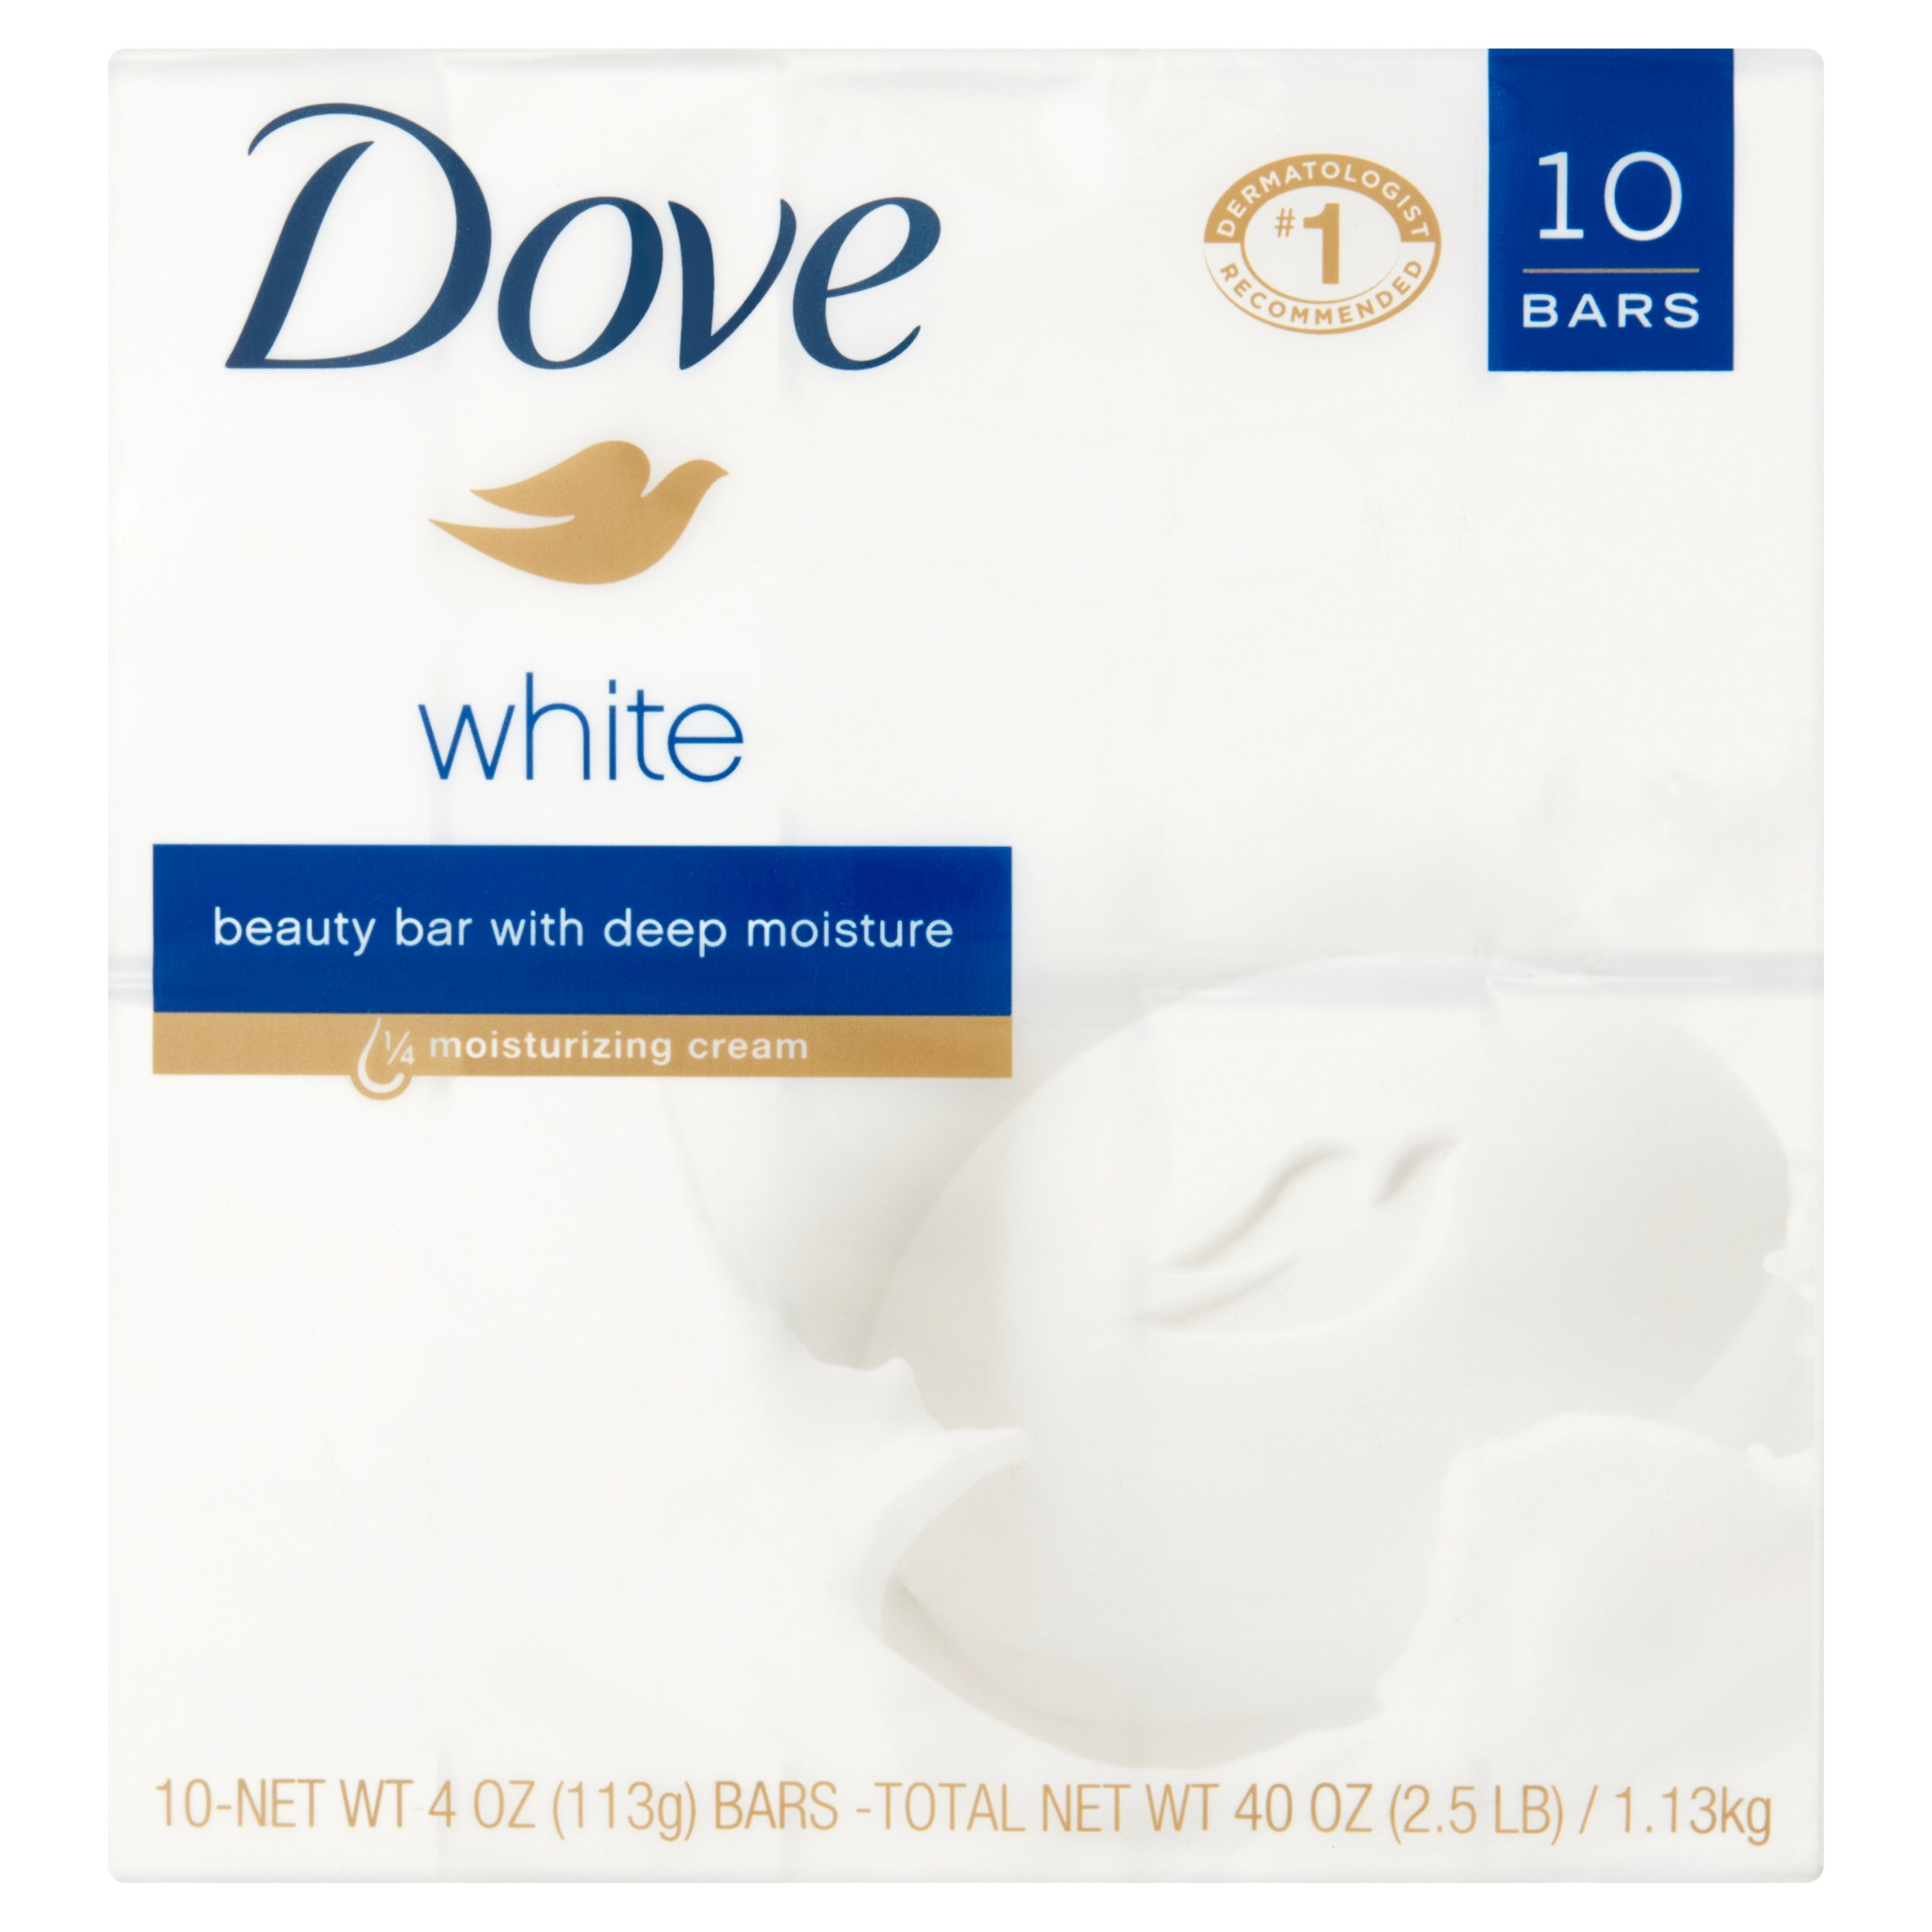 Dove White Beauty Bar with 1/4 Moisturizing Cream, 4 oz, 10 bar